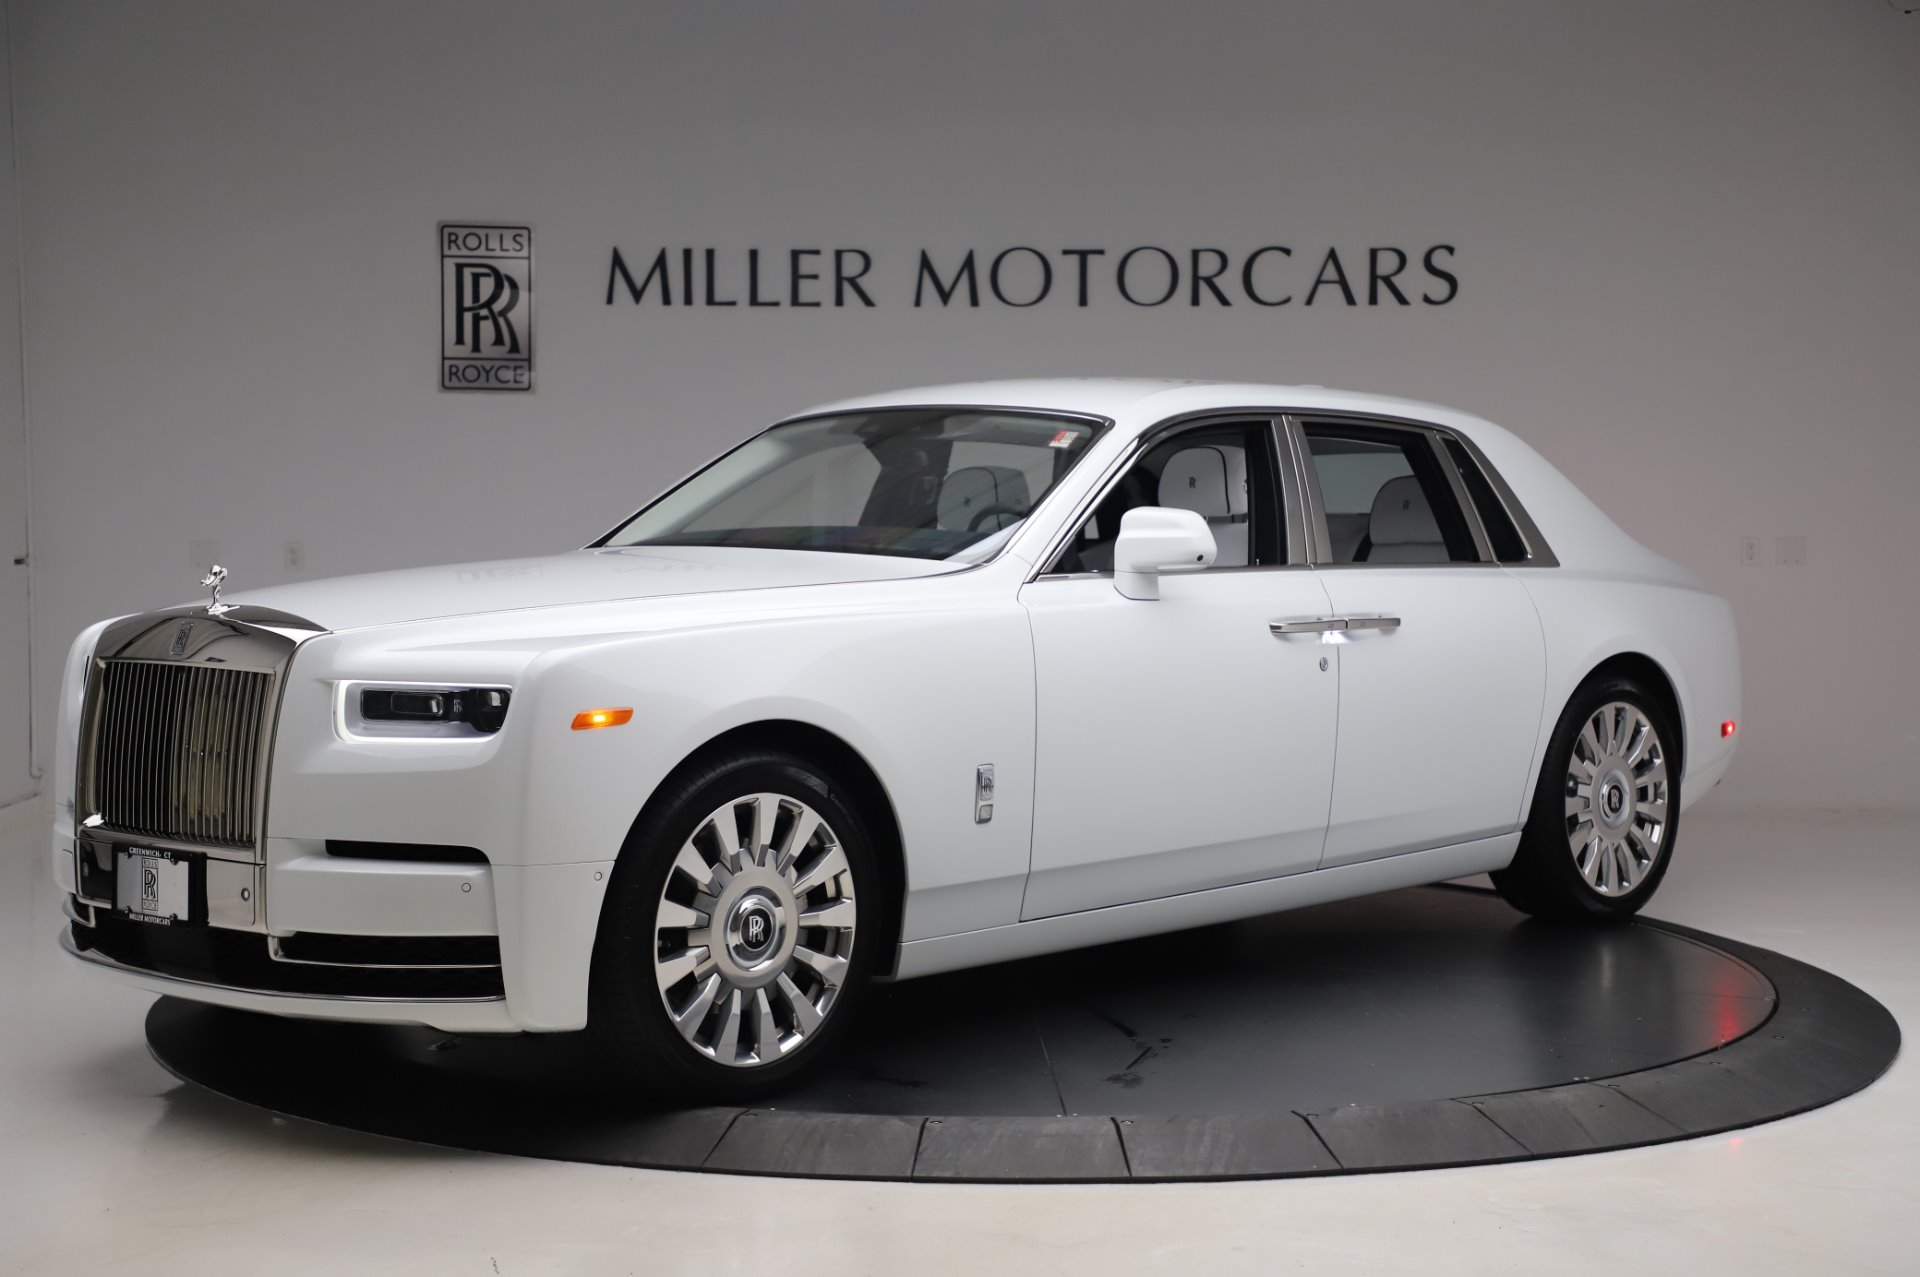 New 2020 Rolls-Royce Phantom for sale $545,200 at Pagani of Greenwich in Greenwich CT 06830 1